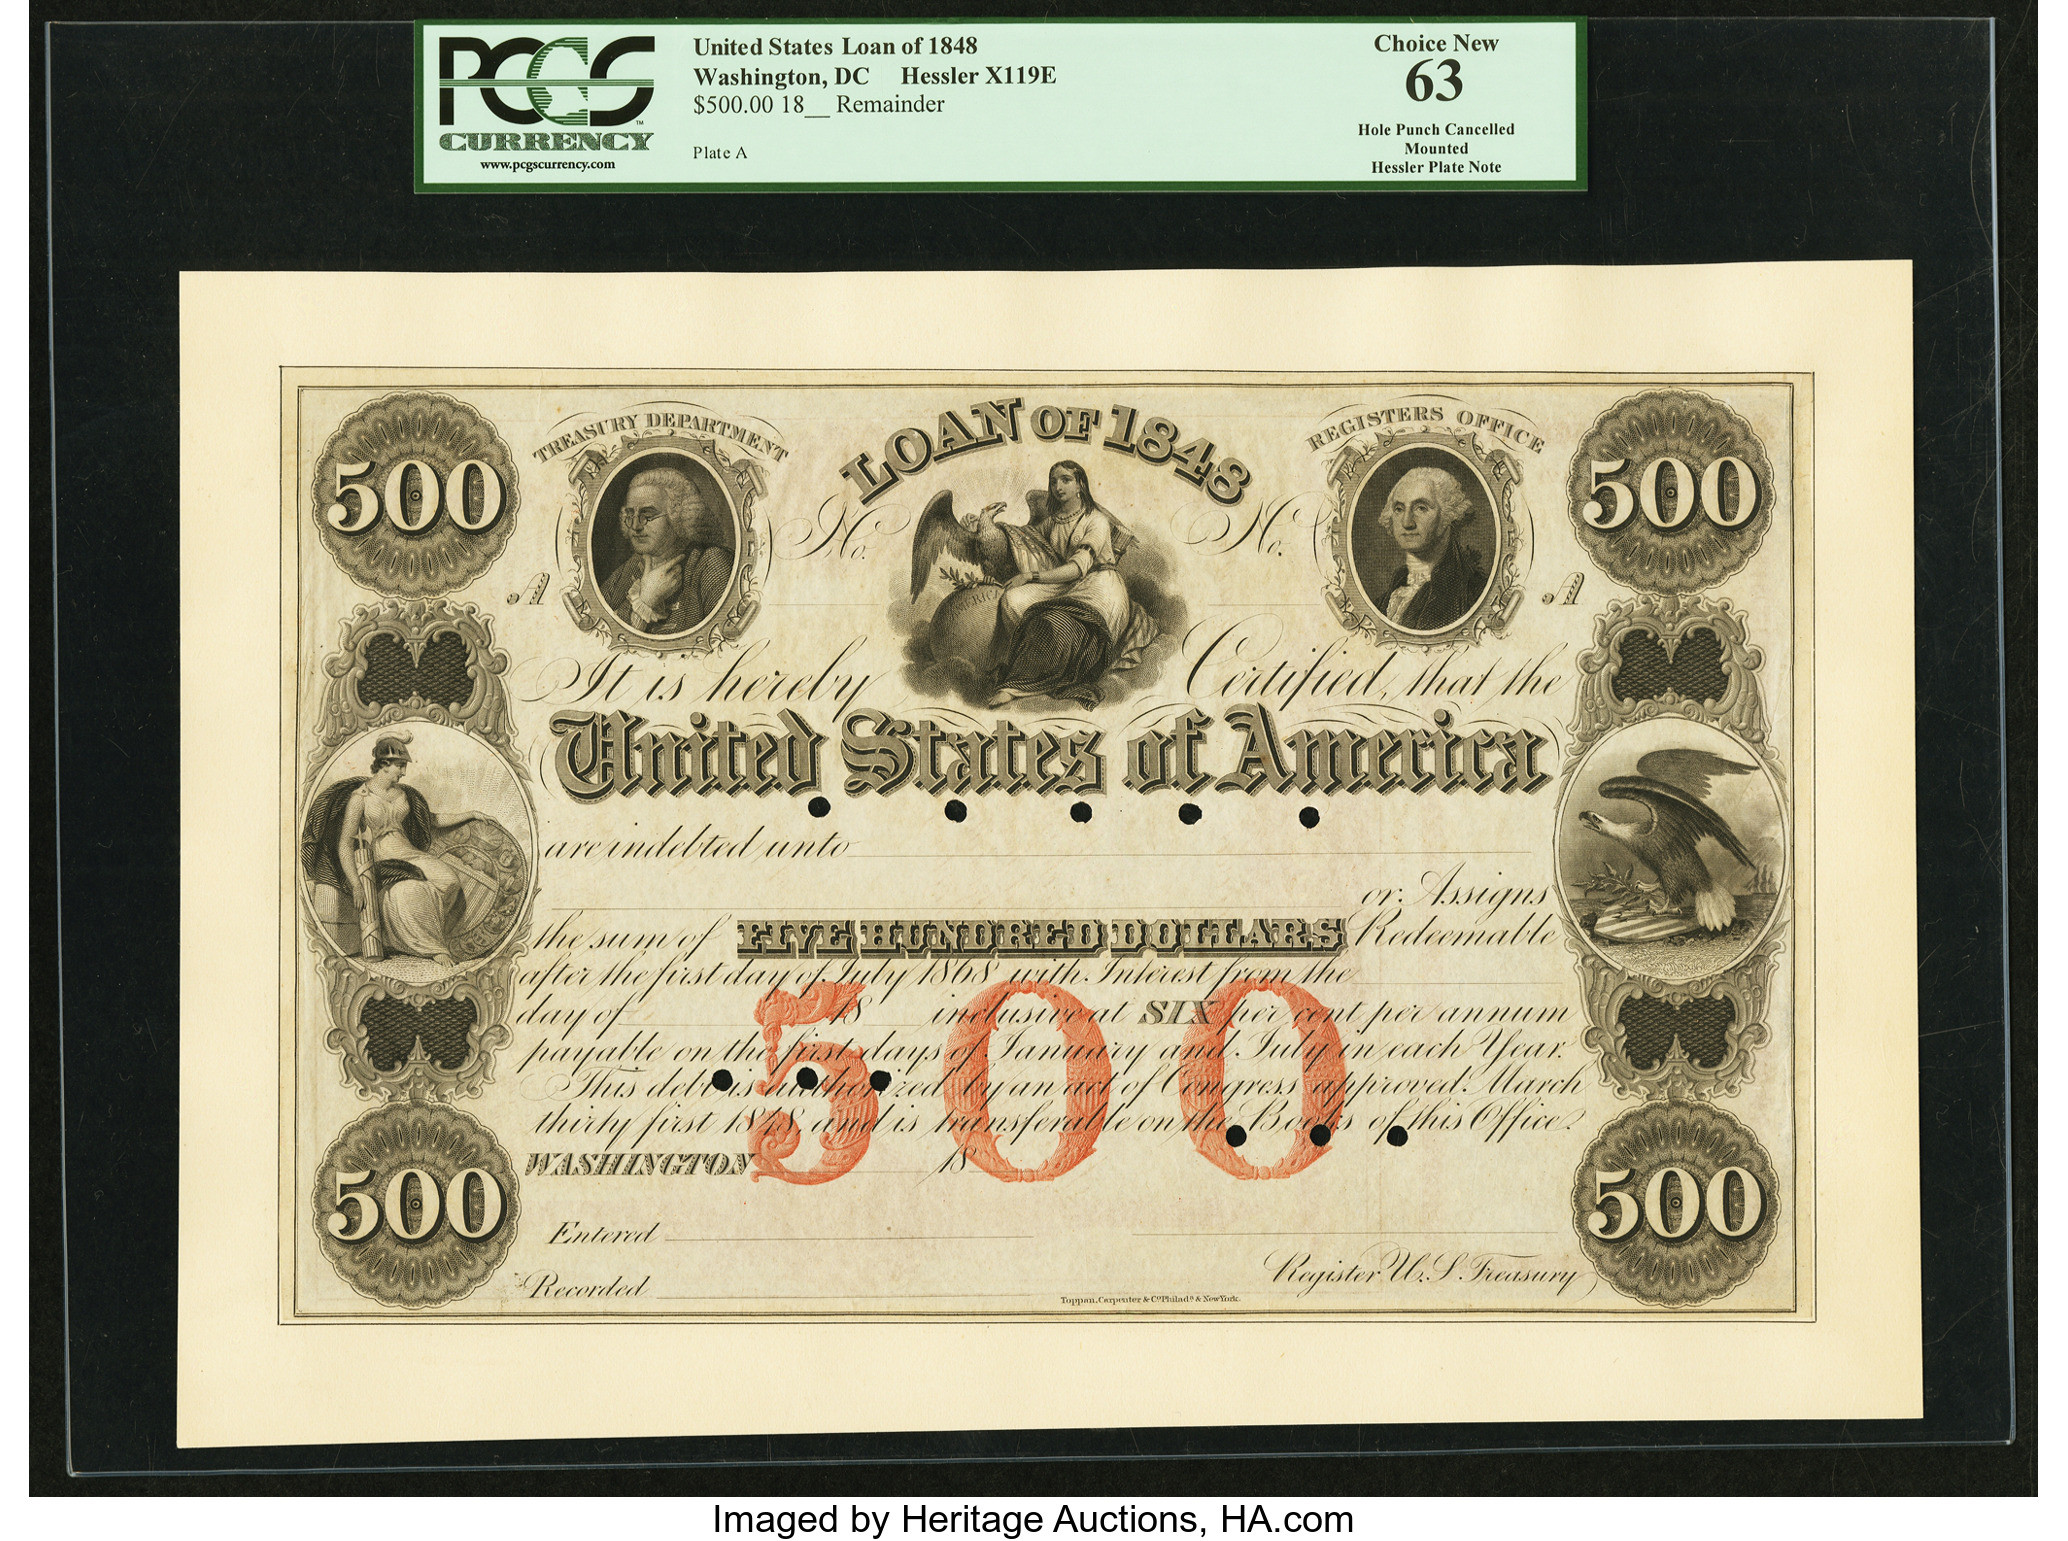 United States Loan of 1848 $500_f1.jpg